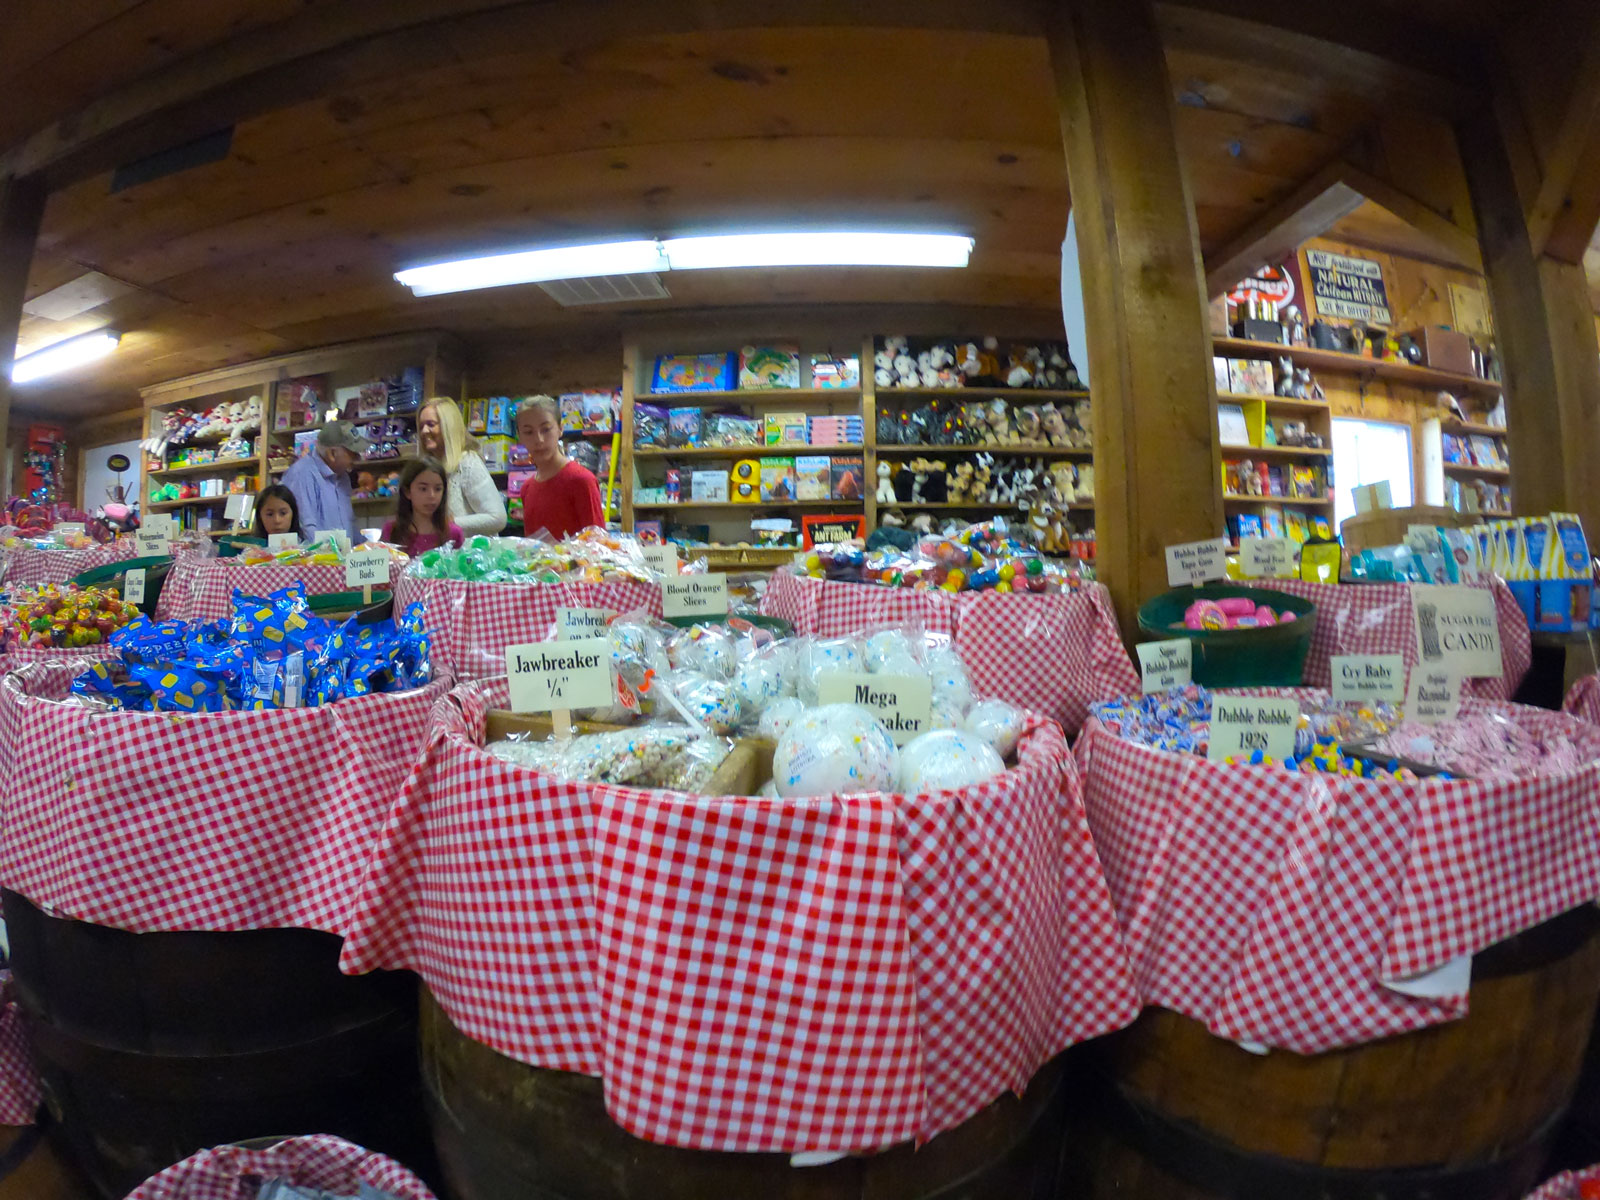 Photo of a candy counter at the Mast General Store Annex in Valle Crucis, North Carolina